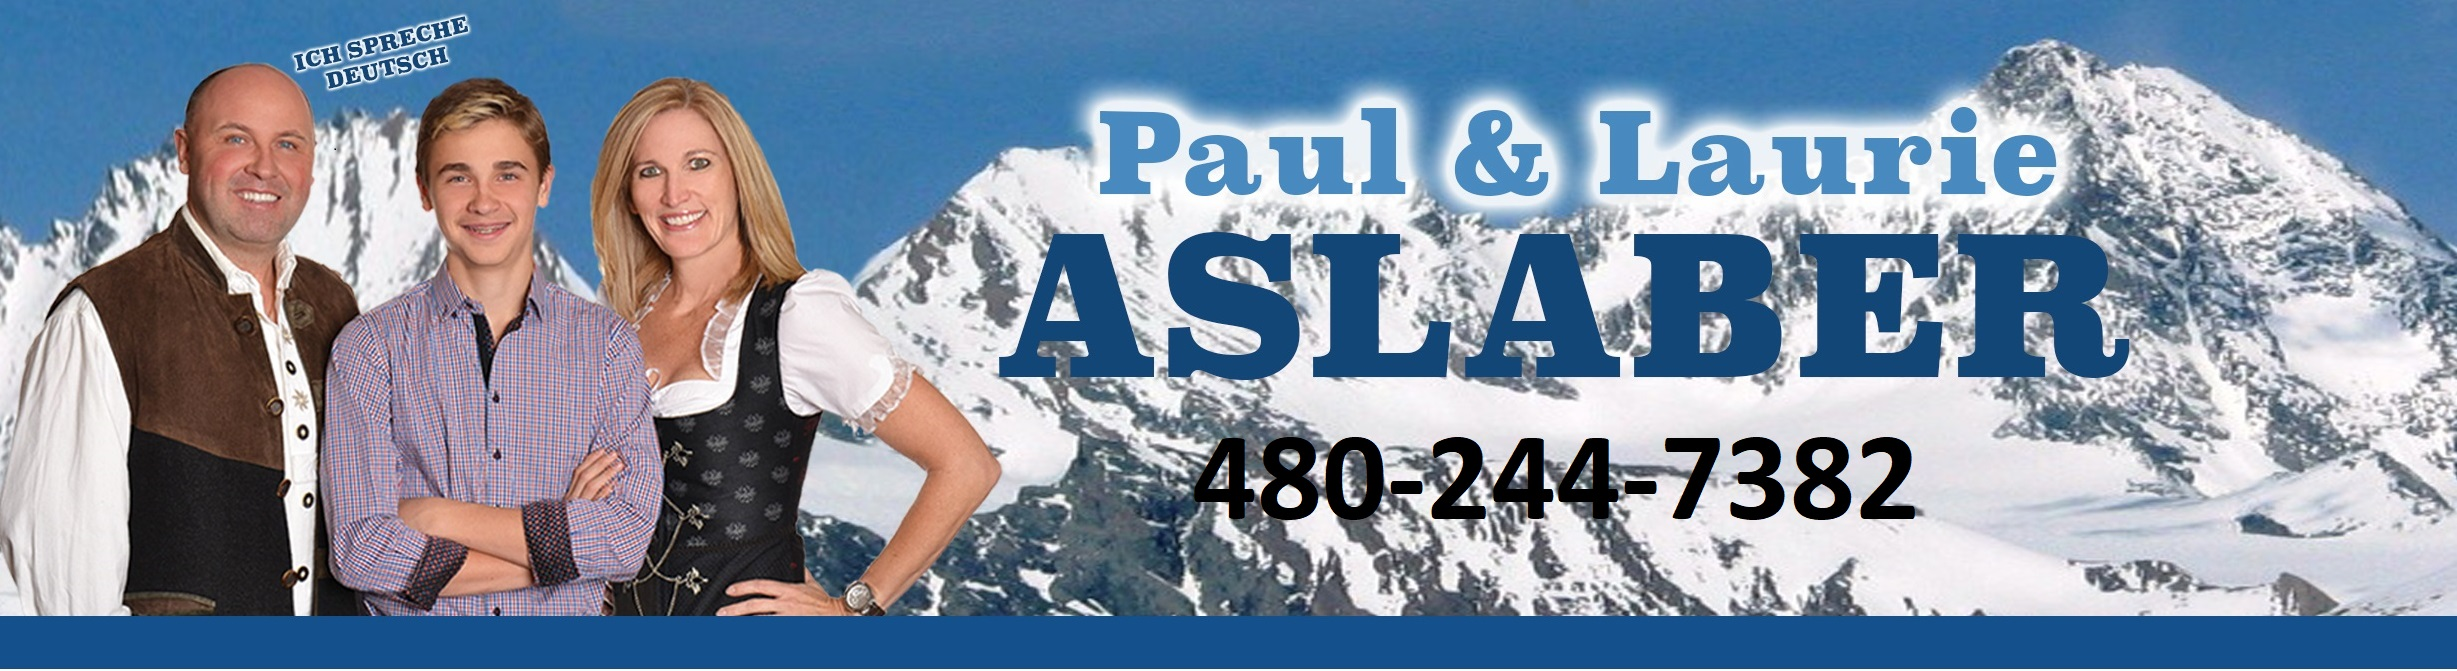 The Paul Aslaber Team